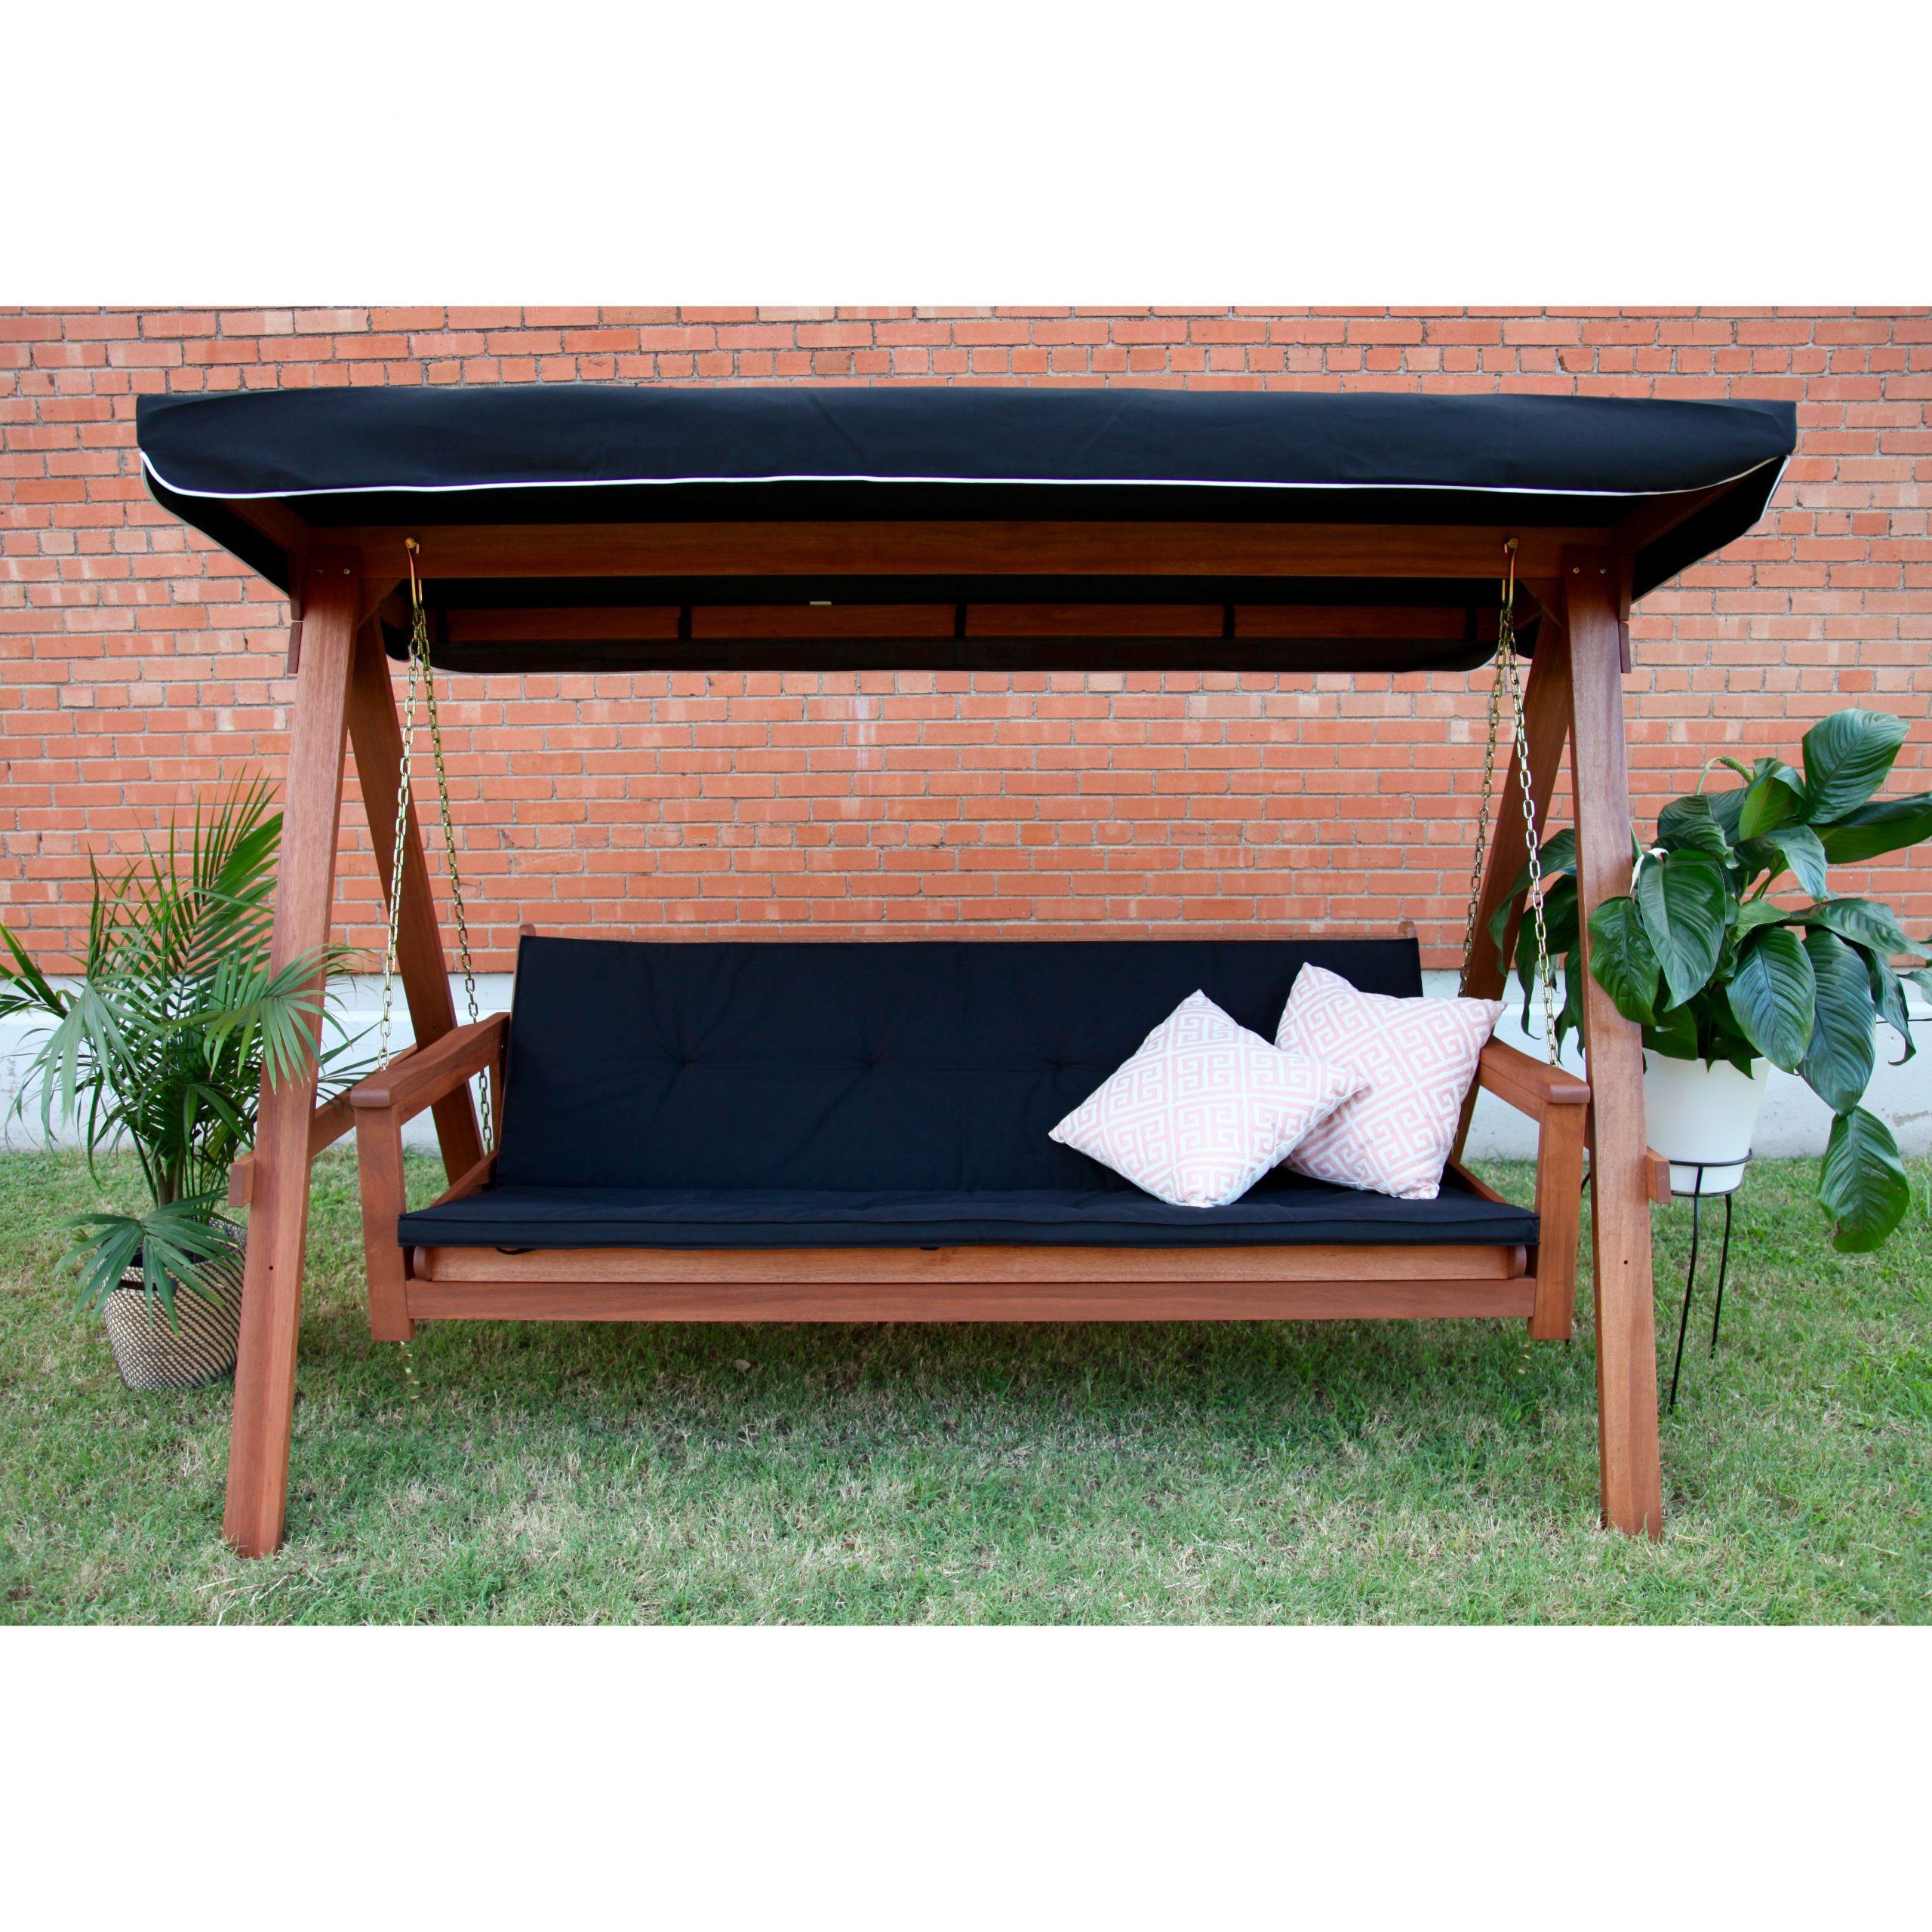 Lautan Llc Avoca 3 Seat Porch Swing Daybed | Porch Swing Pertaining To Wicker Glider Outdoor Porch Swings With Stand (View 6 of 25)